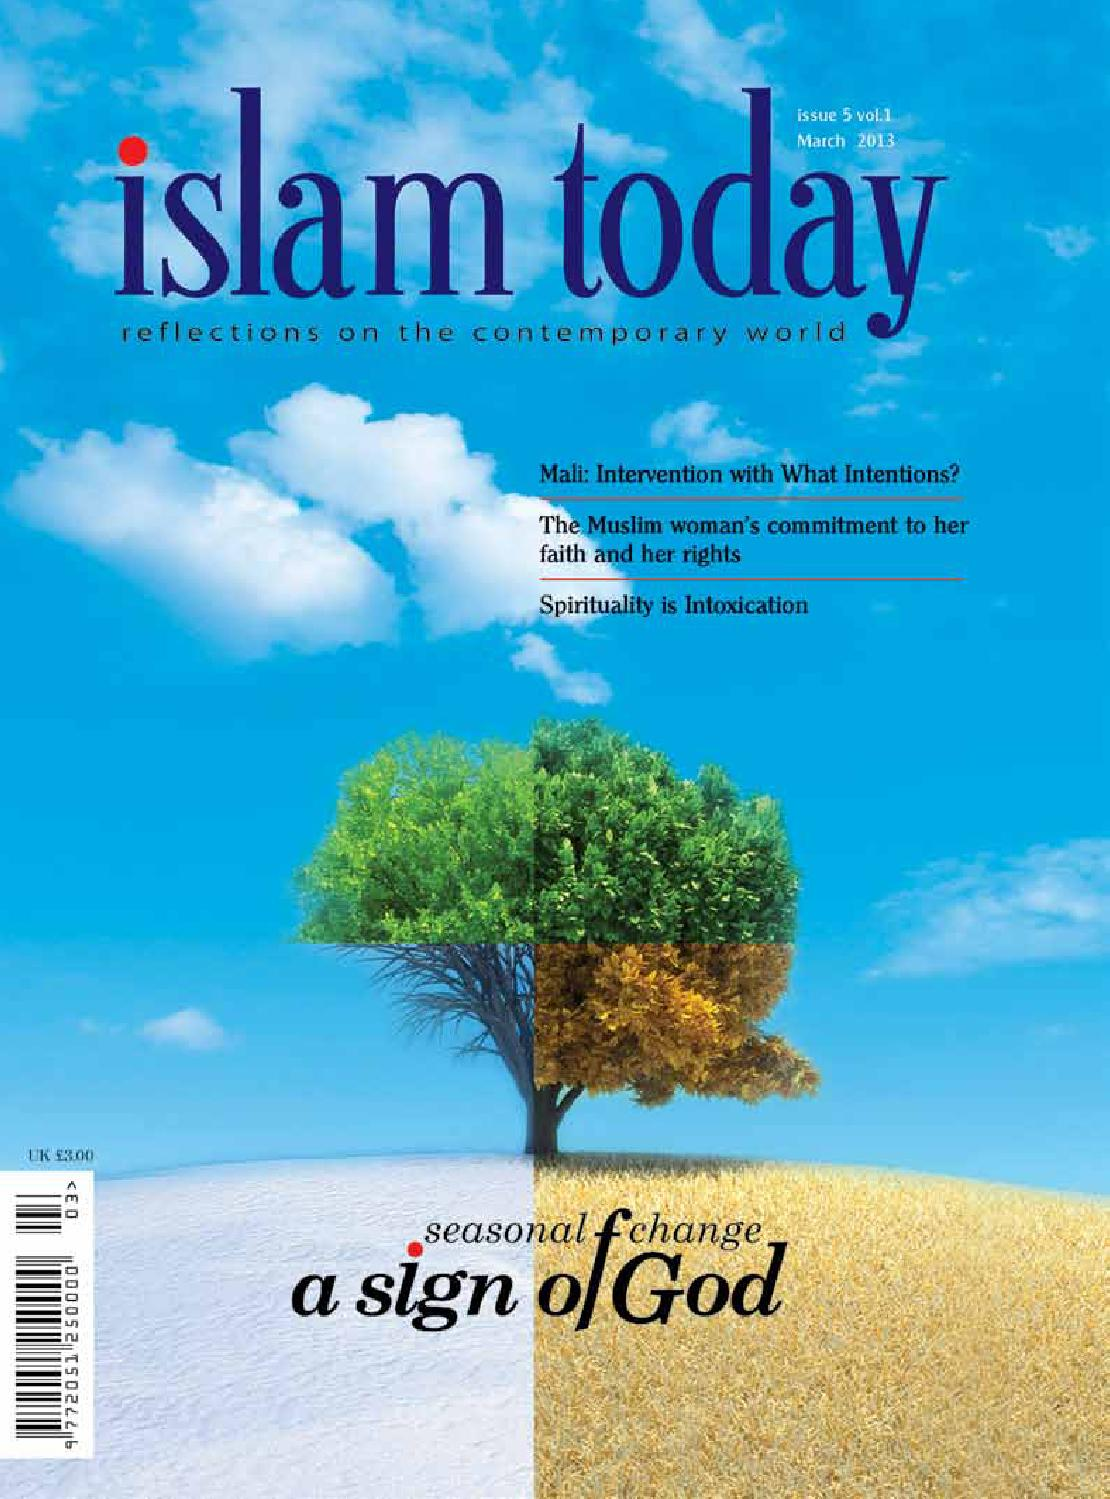 Islam today - issue 5 - March 2013 by islam today magazine UK - issuu